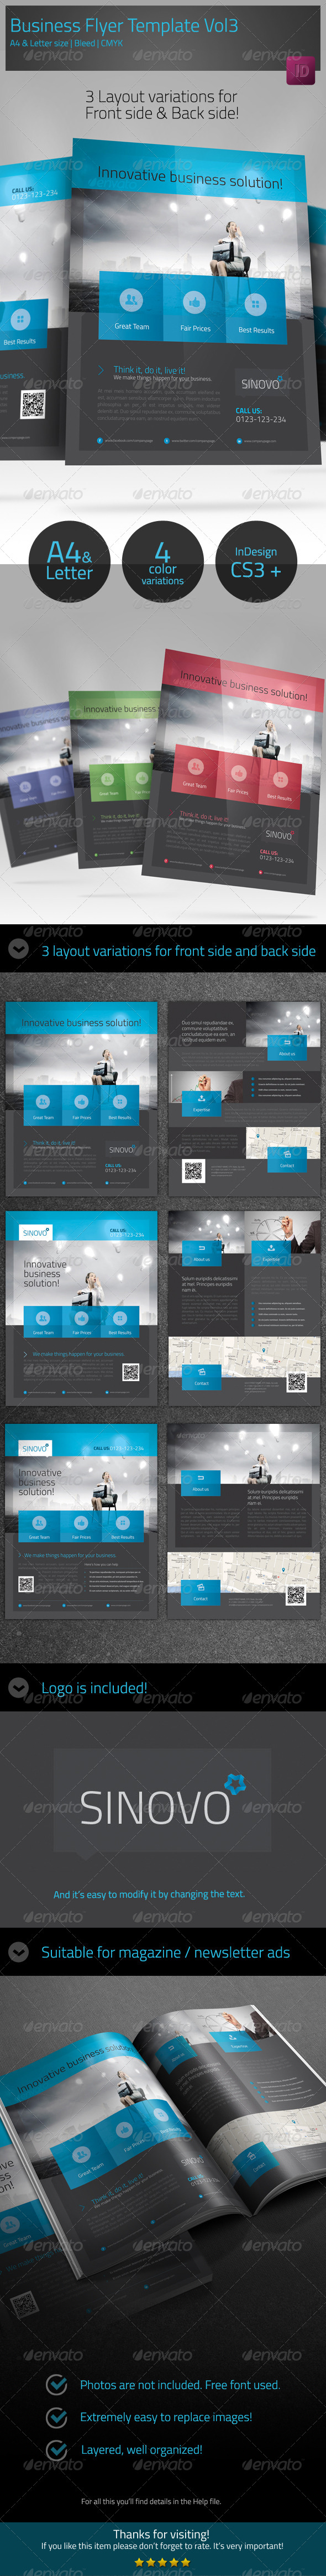 Business Corporate Flyer Template vol3 - Flyers Print Templates